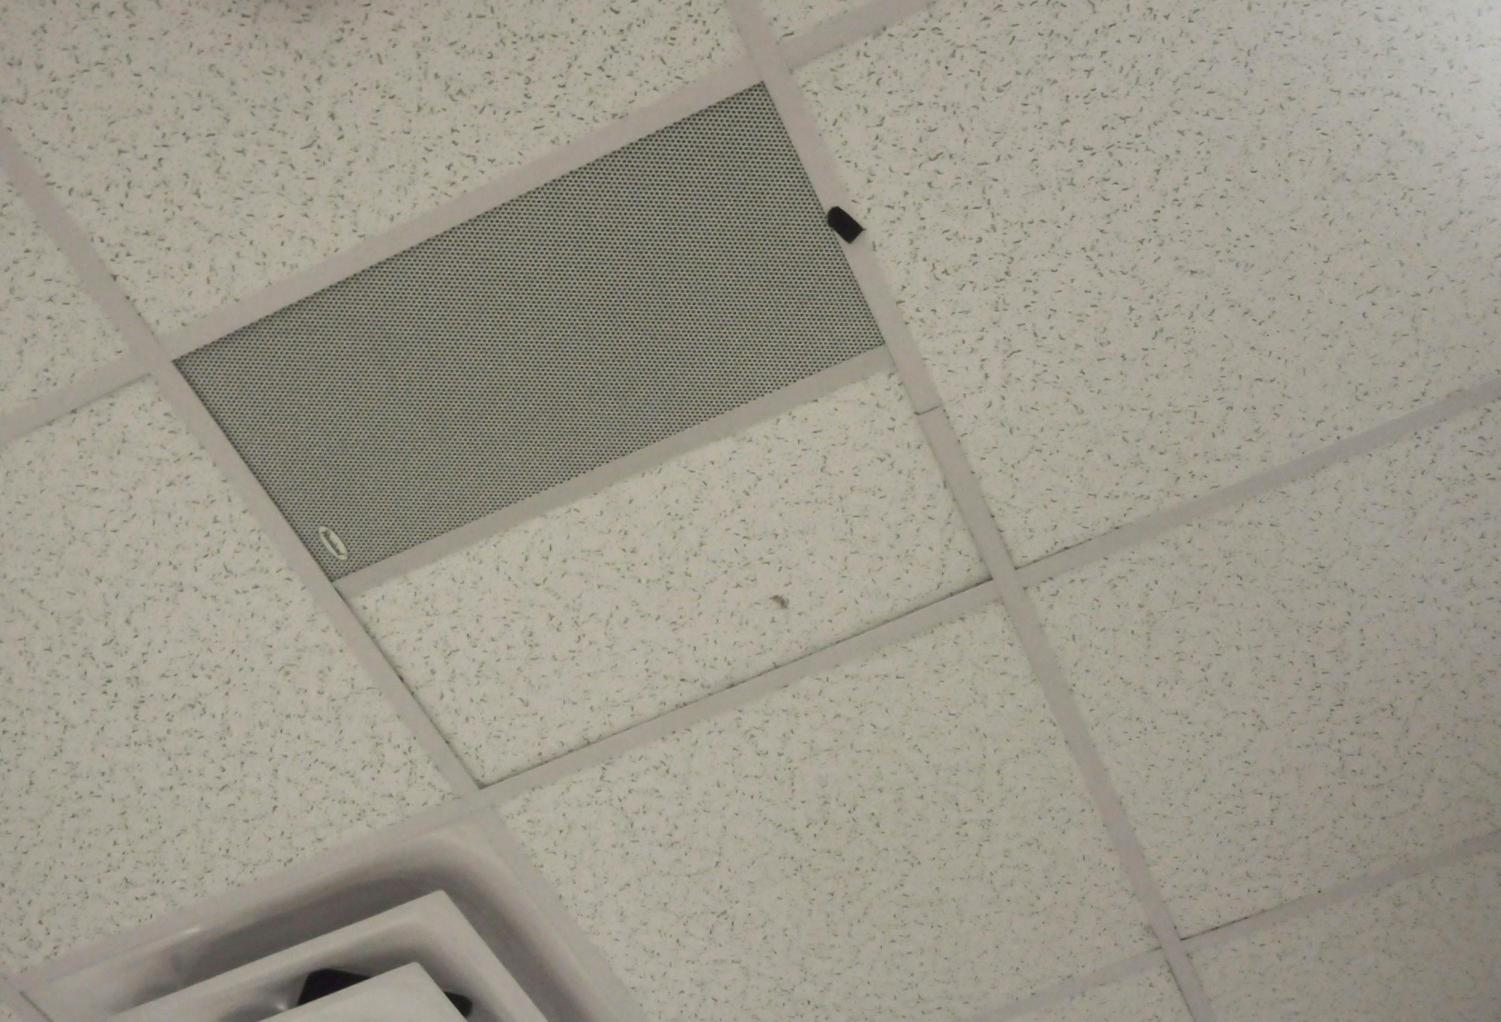 A classroom speaker on the ceiling that will communicate emergency messages to students and staff.